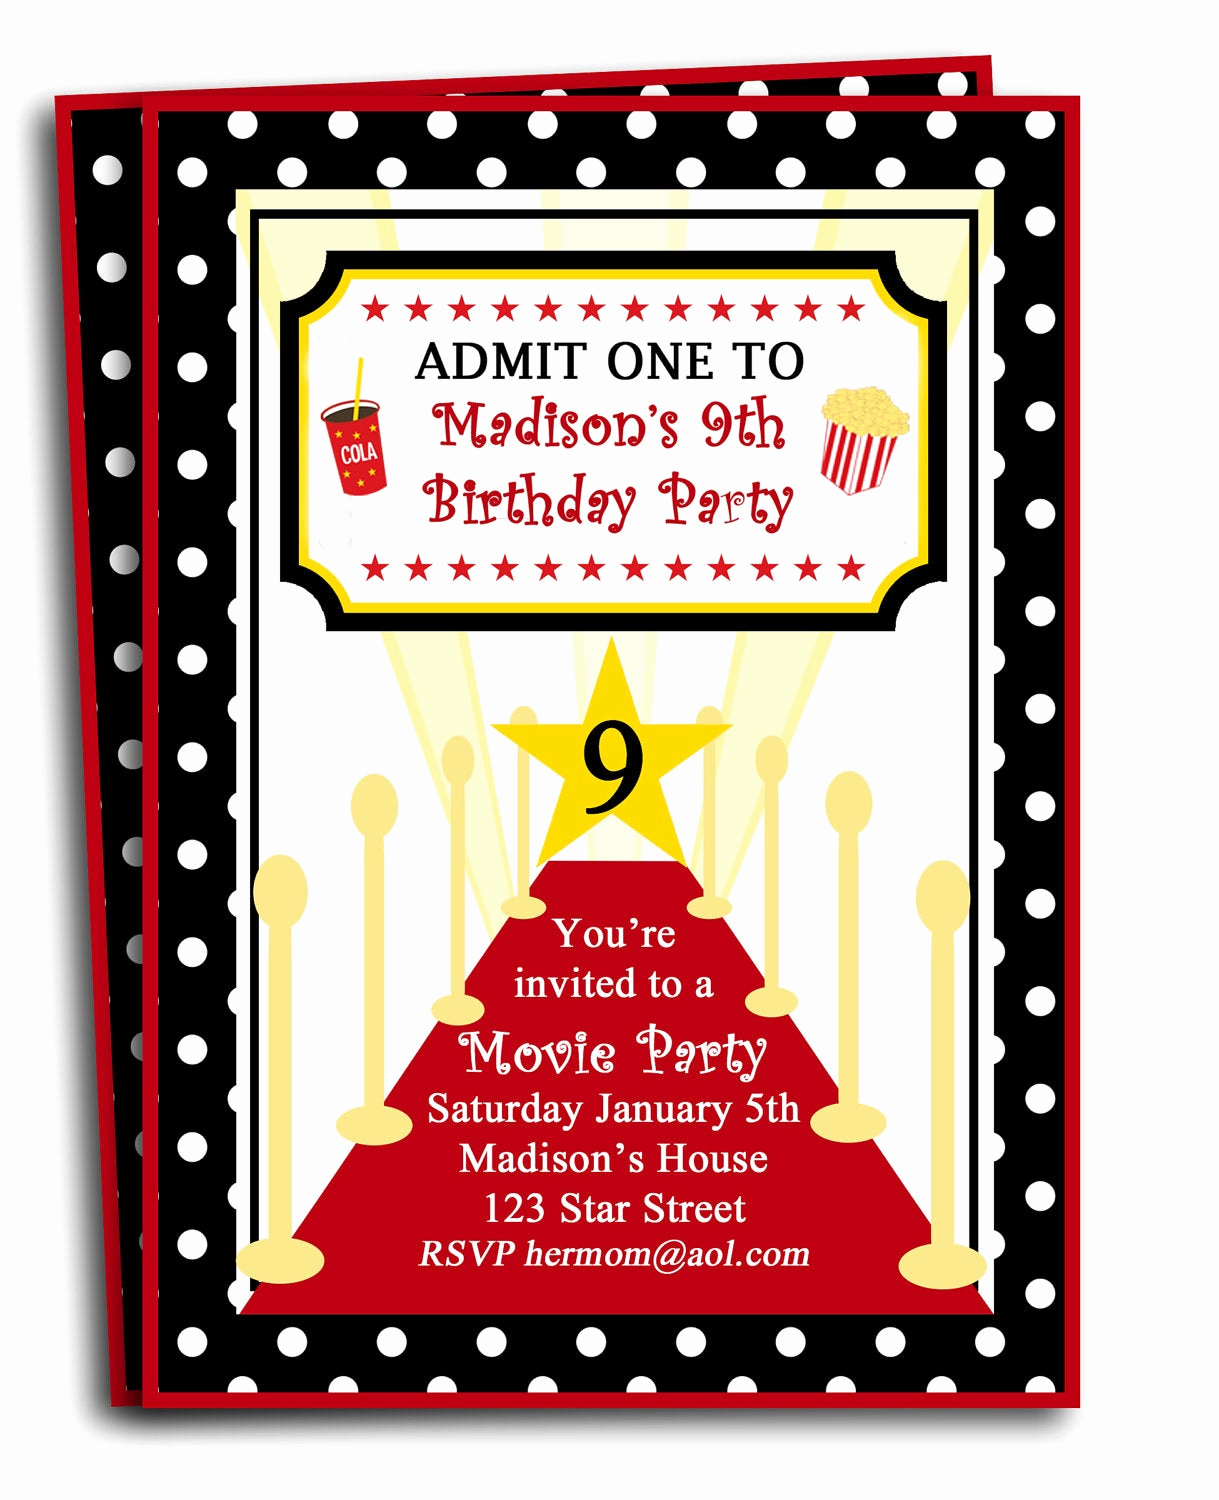 Red Carpet Invitation Template Free Inspirational Red Carpet Party Invitation Printable or Printed with Free